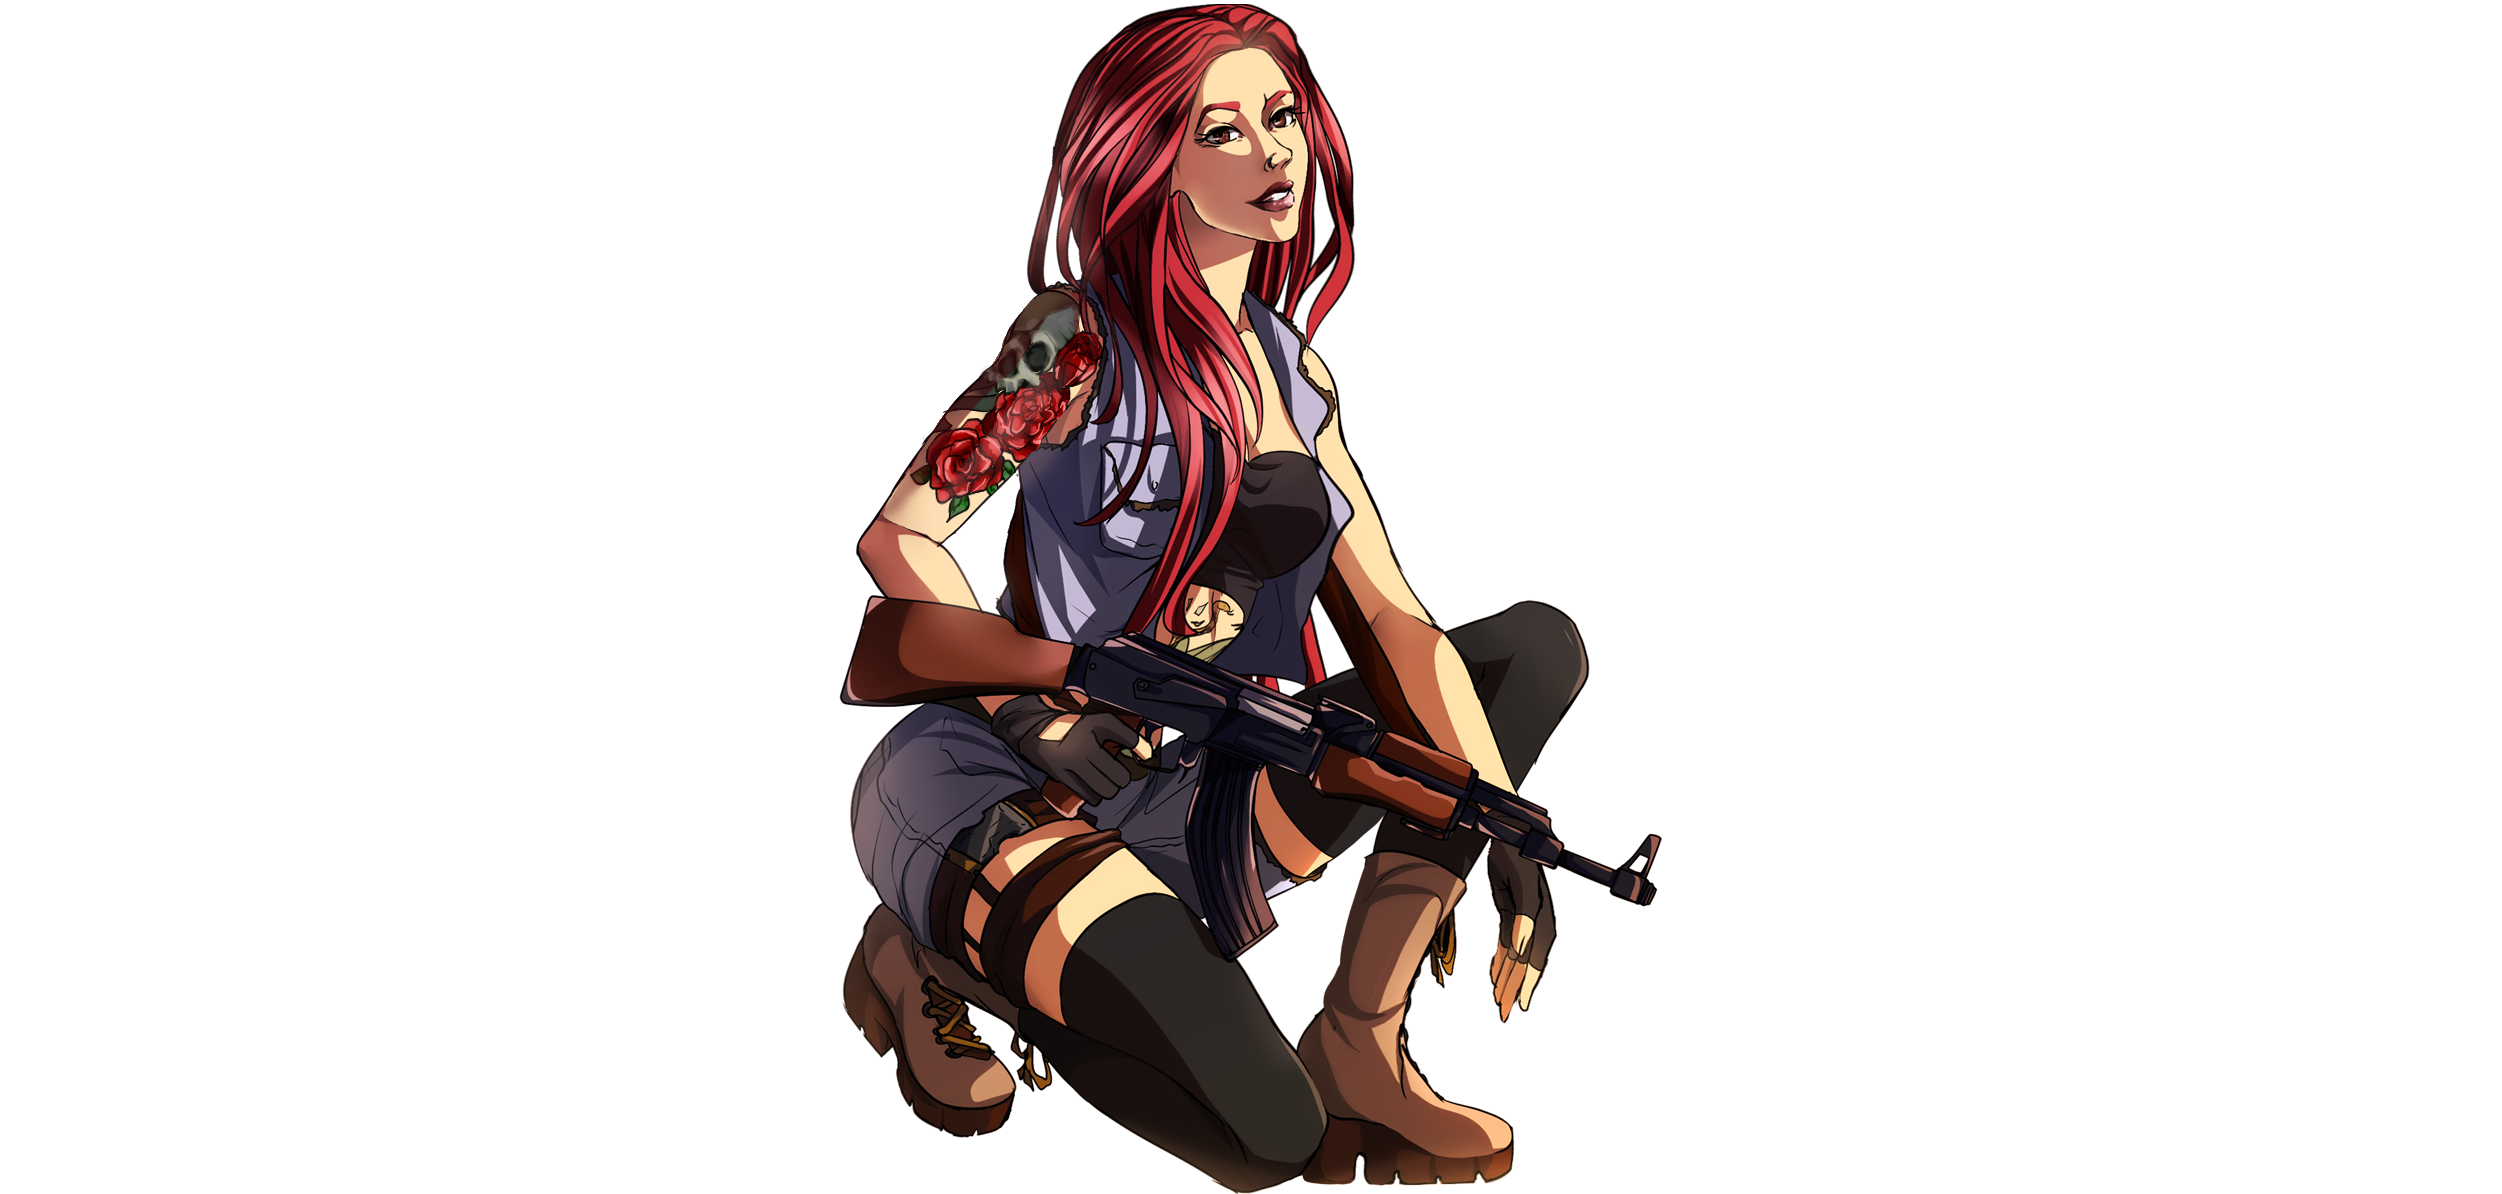 laceduplauren